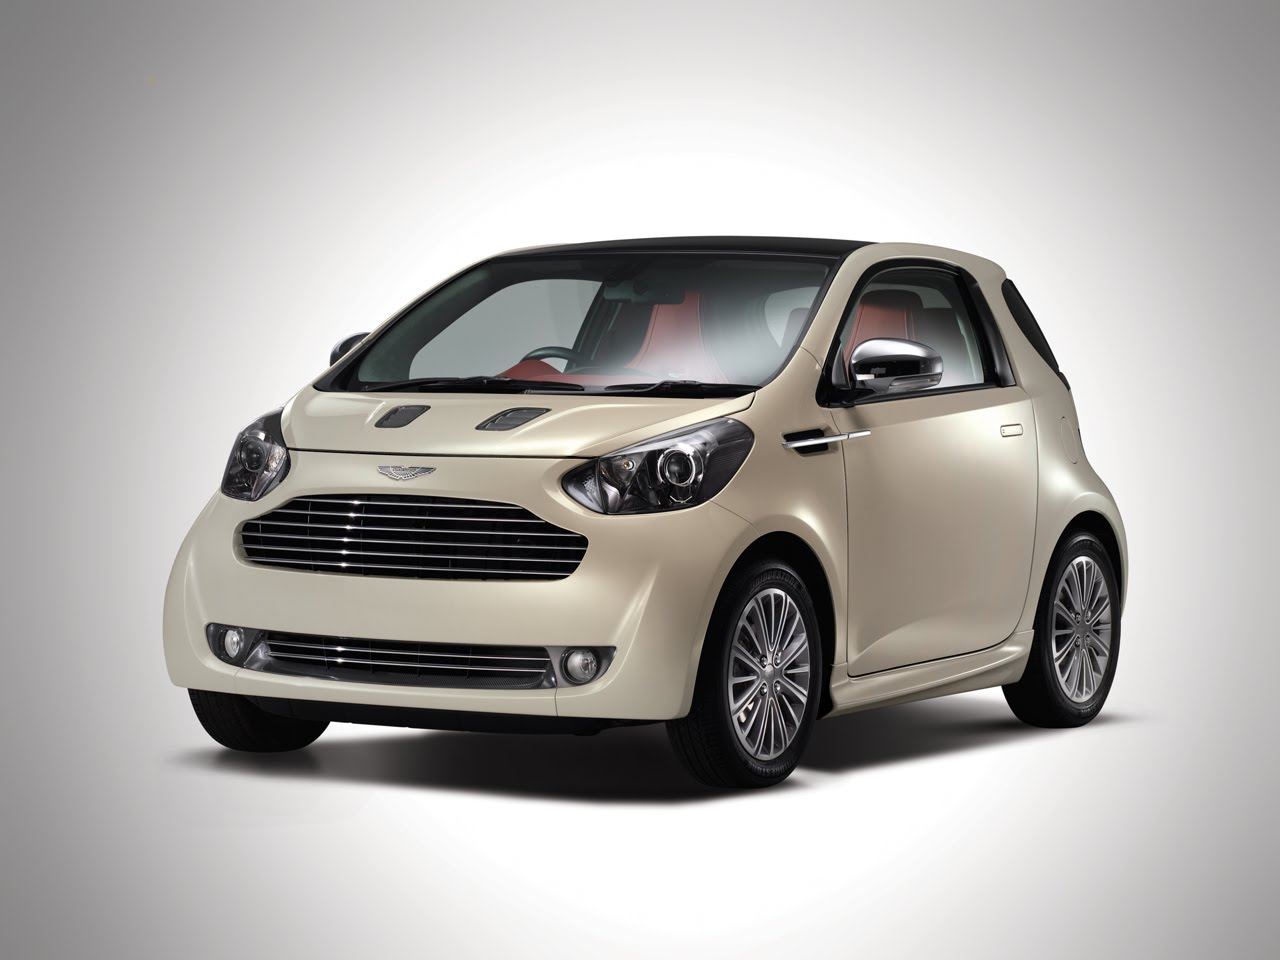 Aston martin cygnet photo - 1